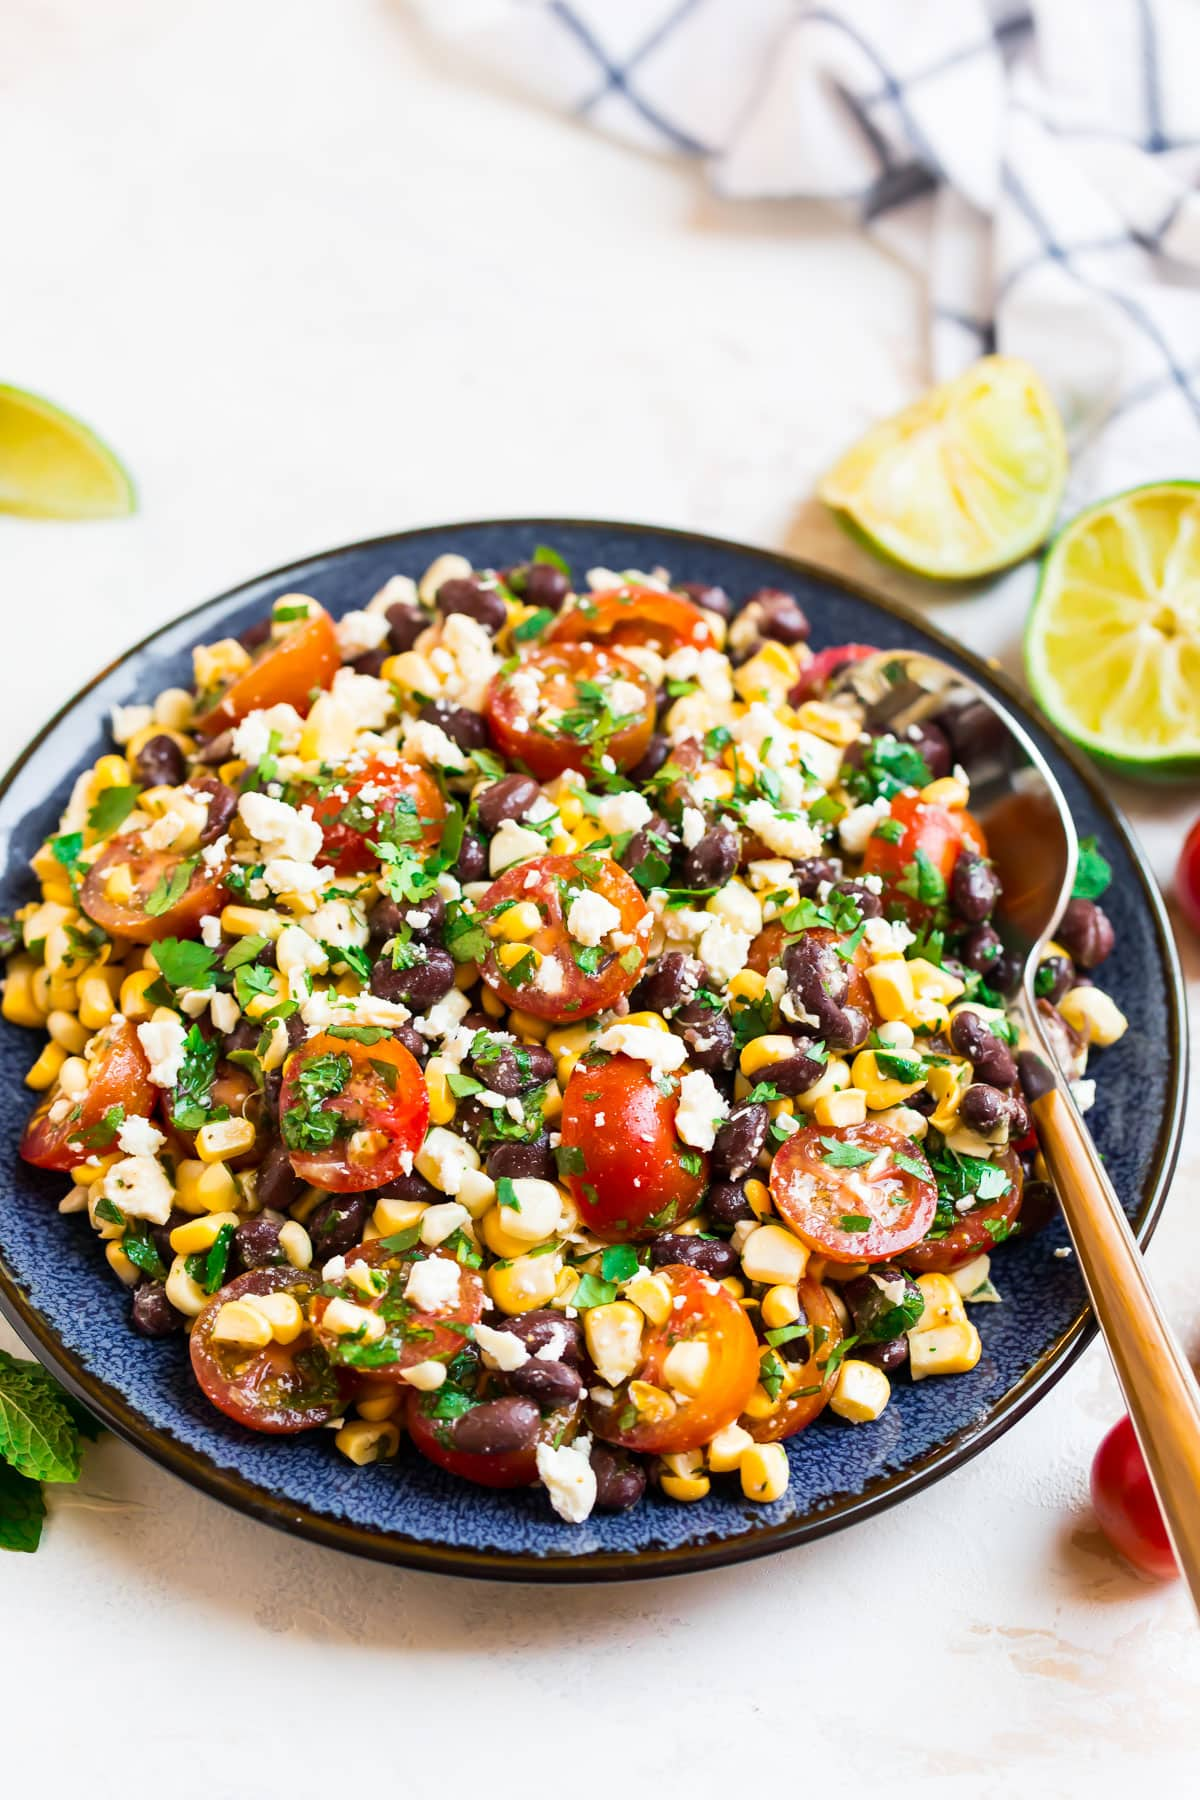 Easy black bean corn salad on a plate